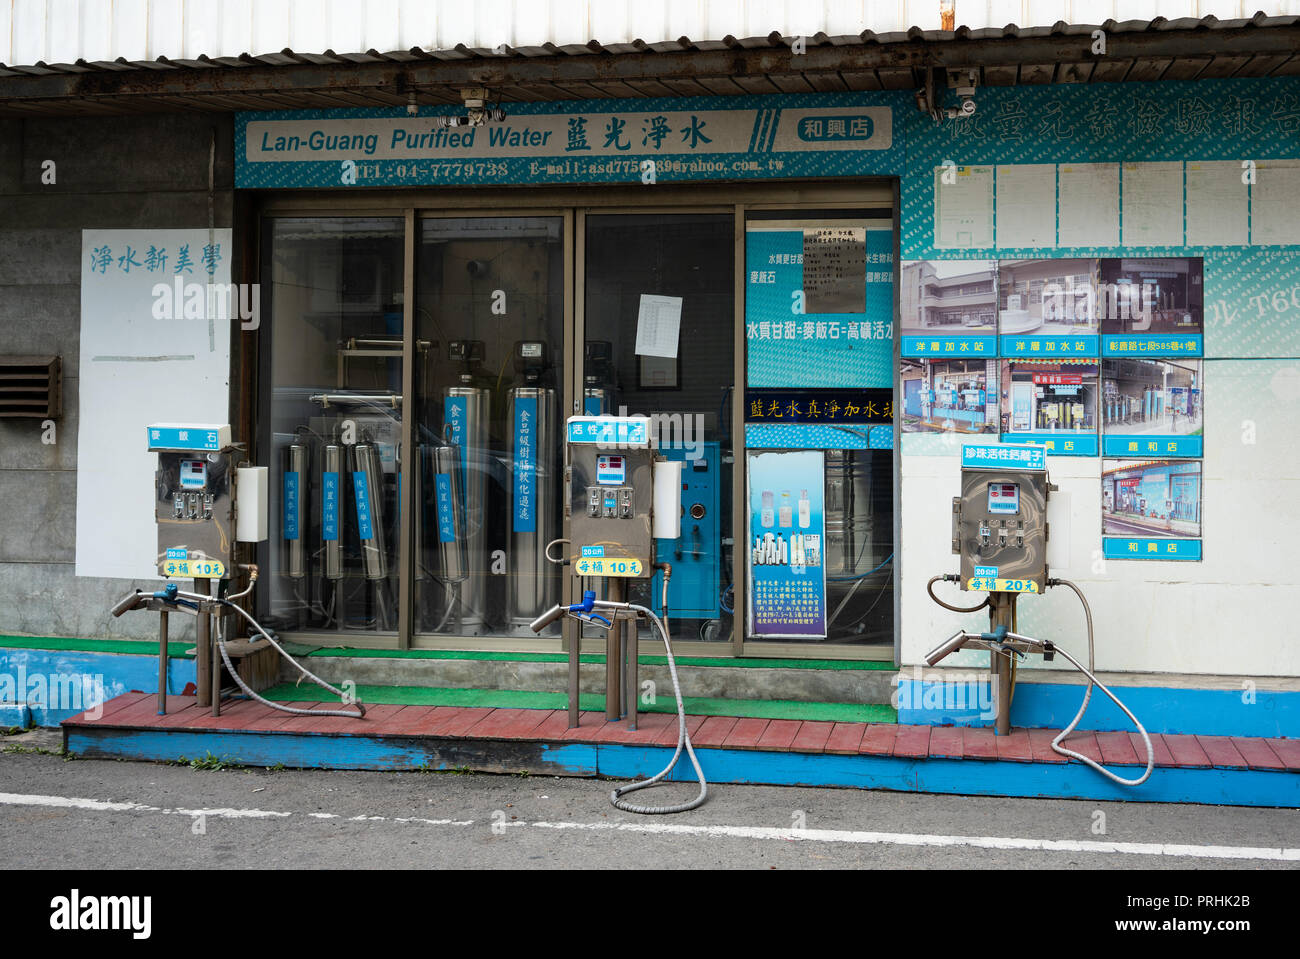 16 February 2018, Lukang Changhua Taiwan : Outdoor public purified water station in the street in Taiwan - Stock Image